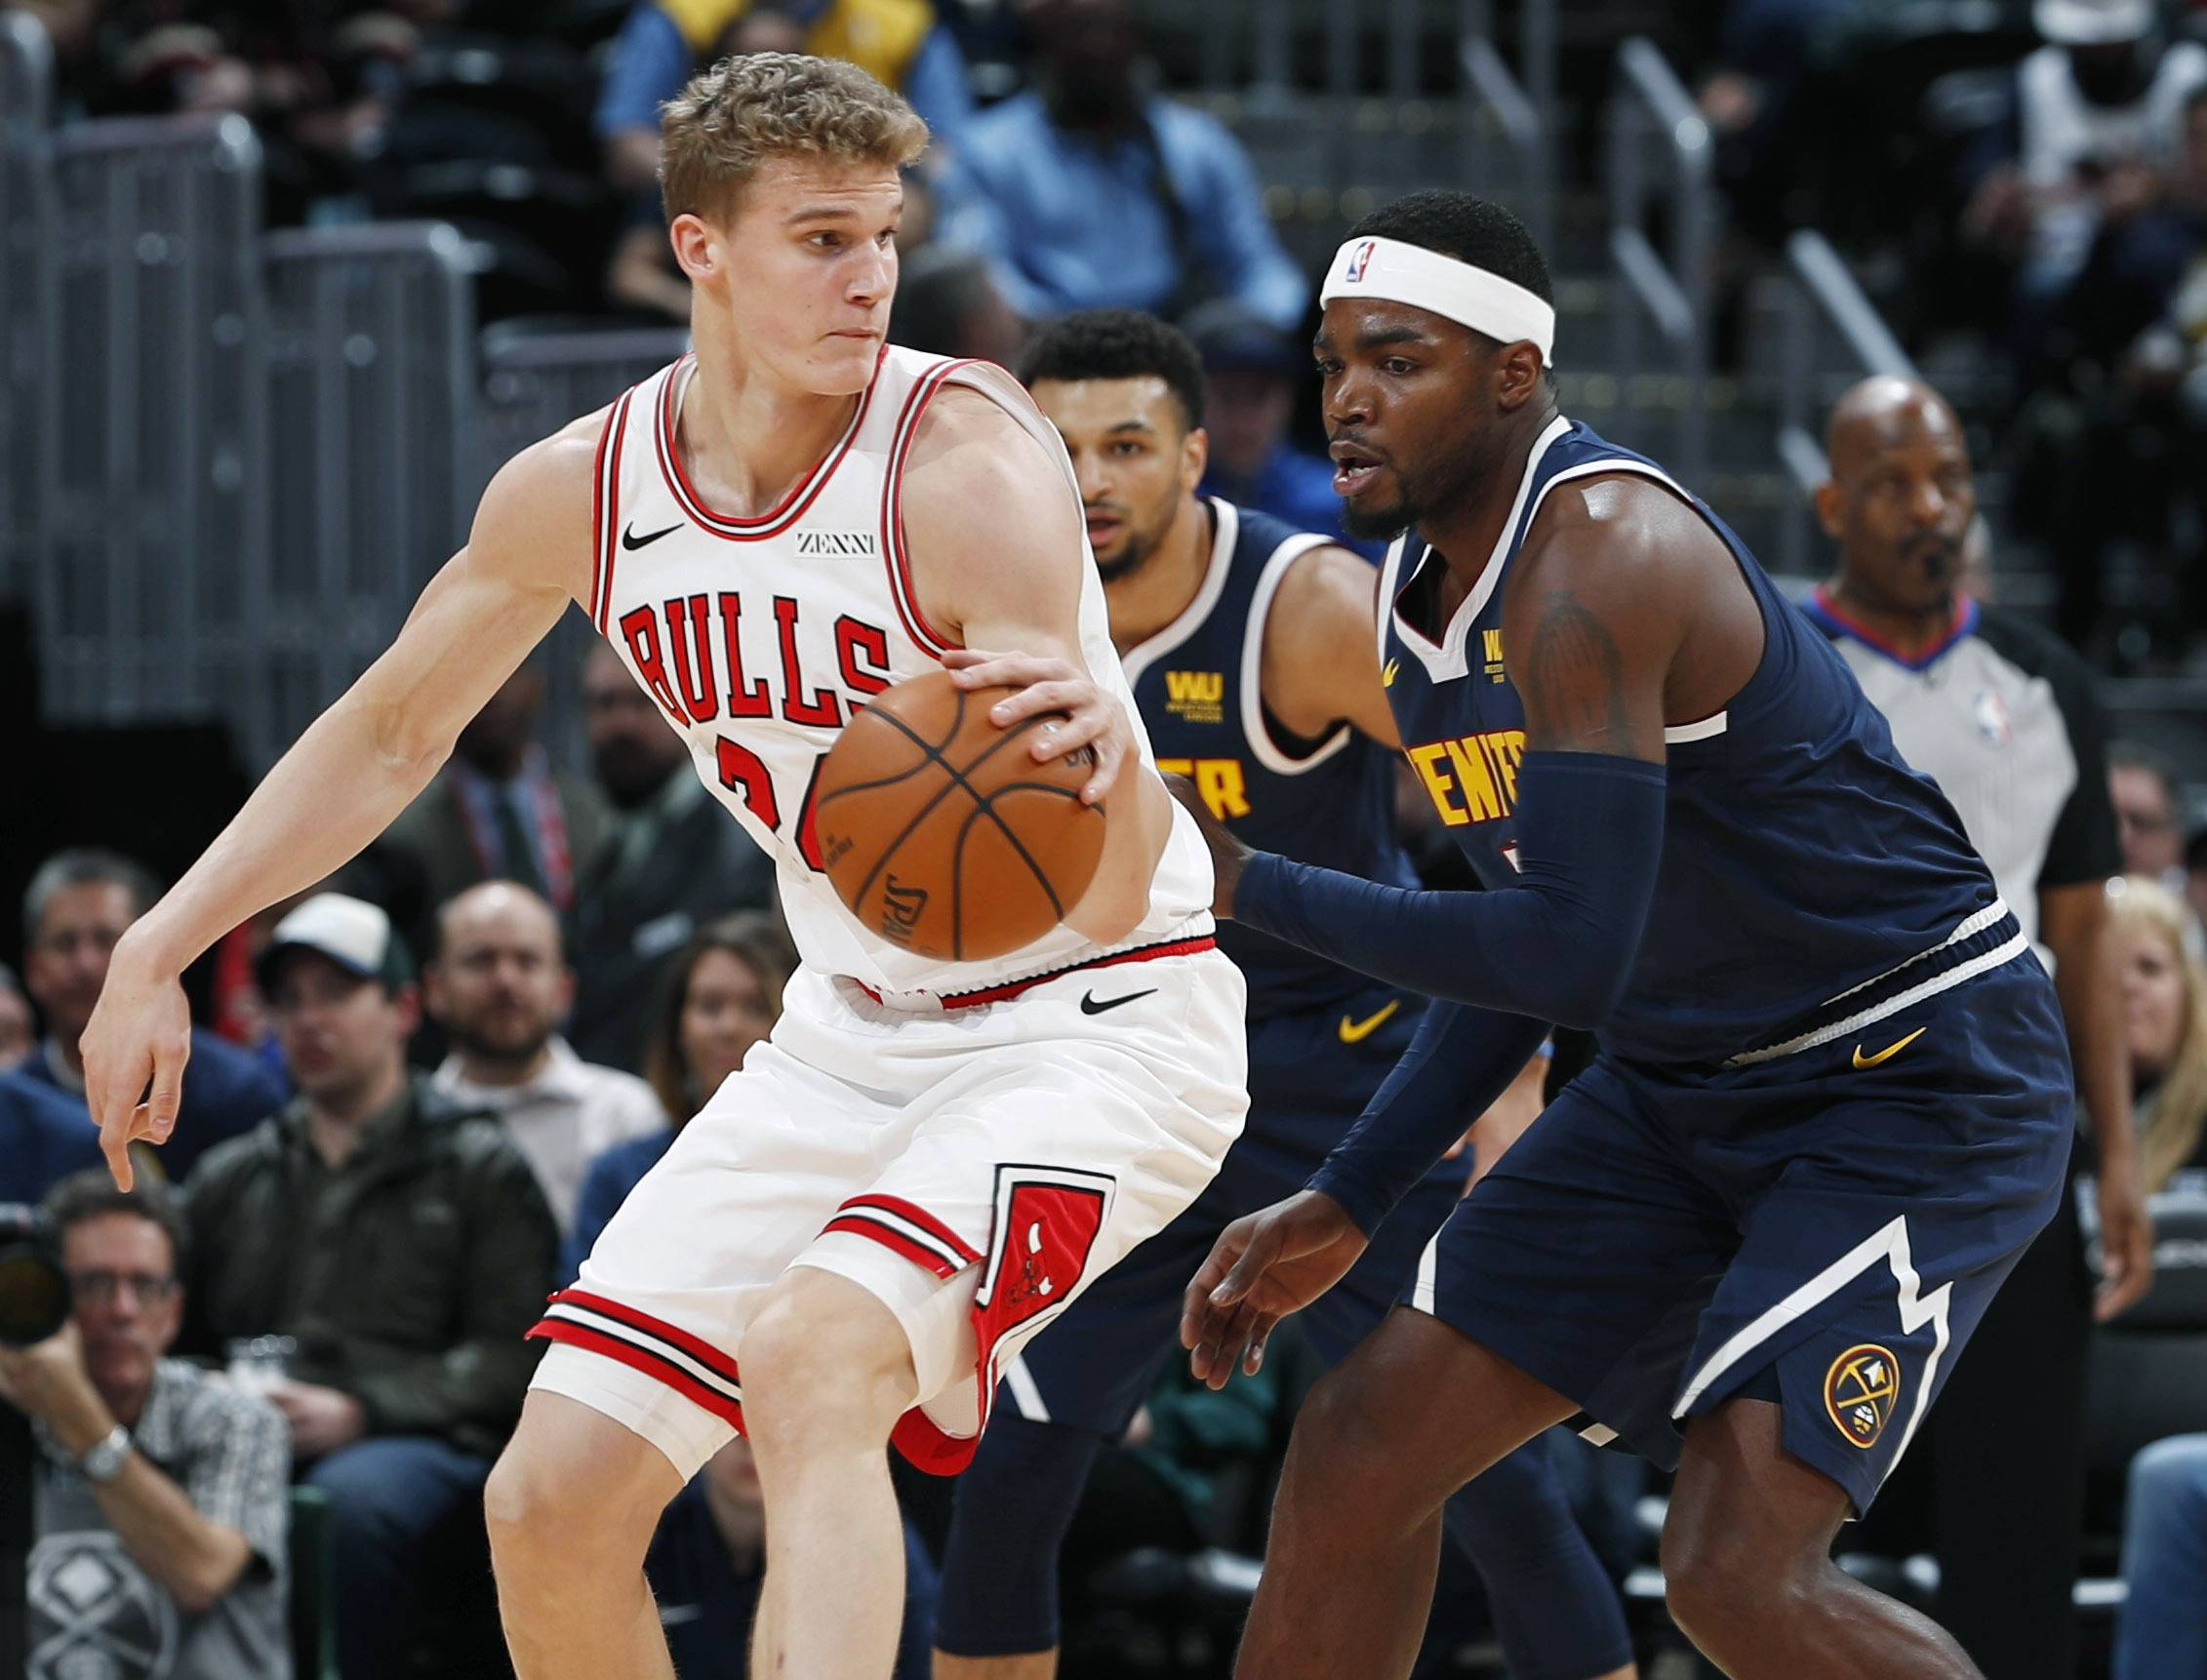 Chicago Bulls forward Lauri Markkanen, left, pulls in a loose ball as Denver Nuggets forward Paul Millsap defends in the first half of an NBA basketball game, Thursday, Jan. 17, 2019, in Denver.